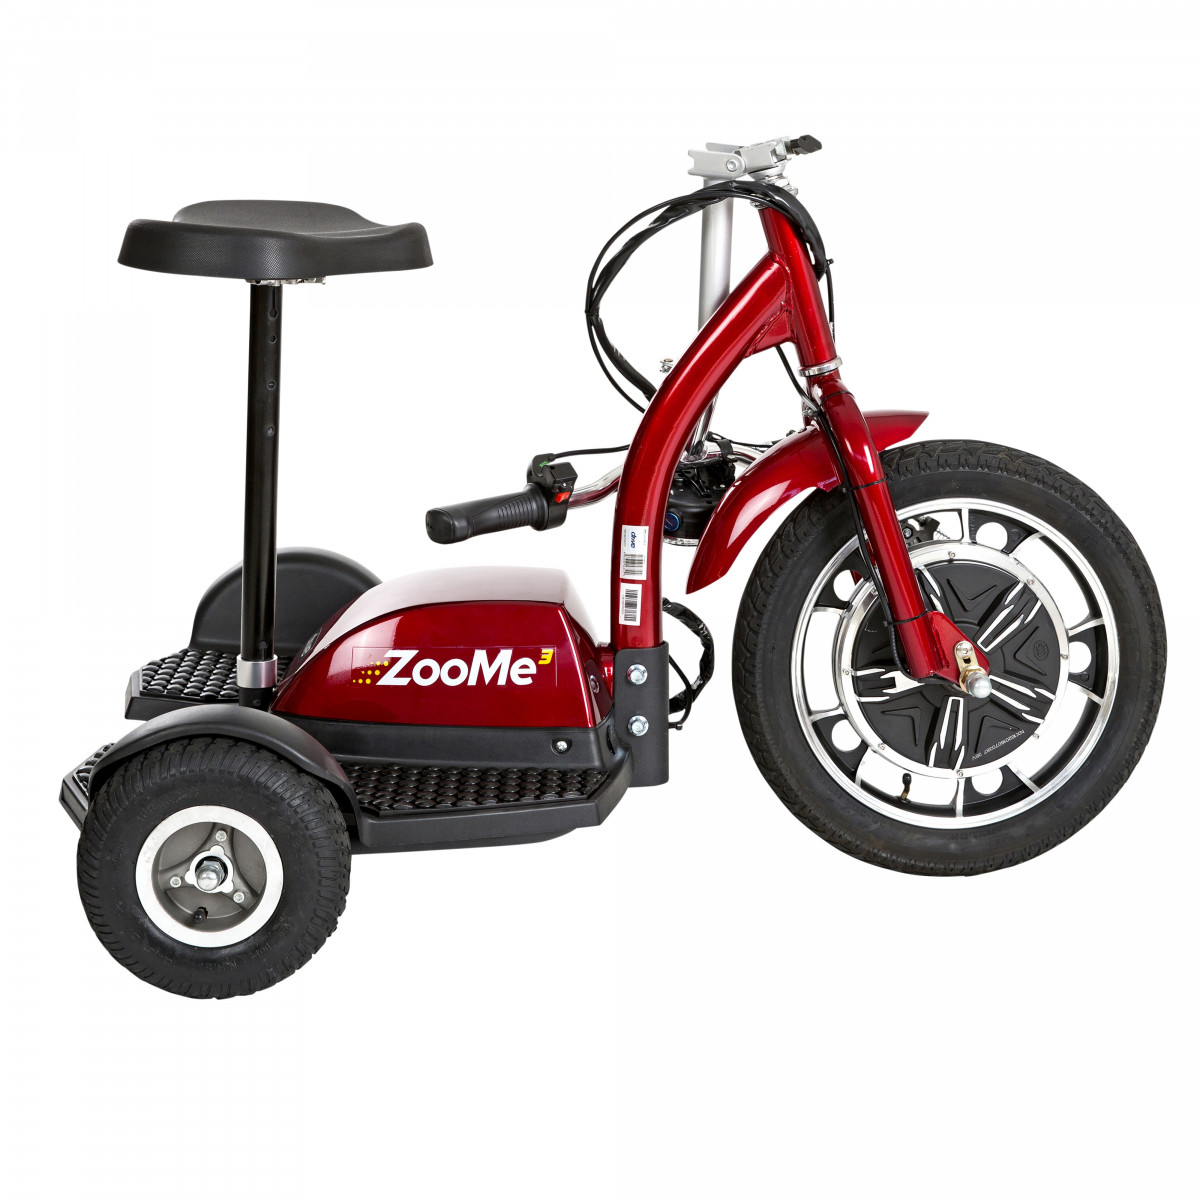 zoome 3 wheel recreational scooter 8cb